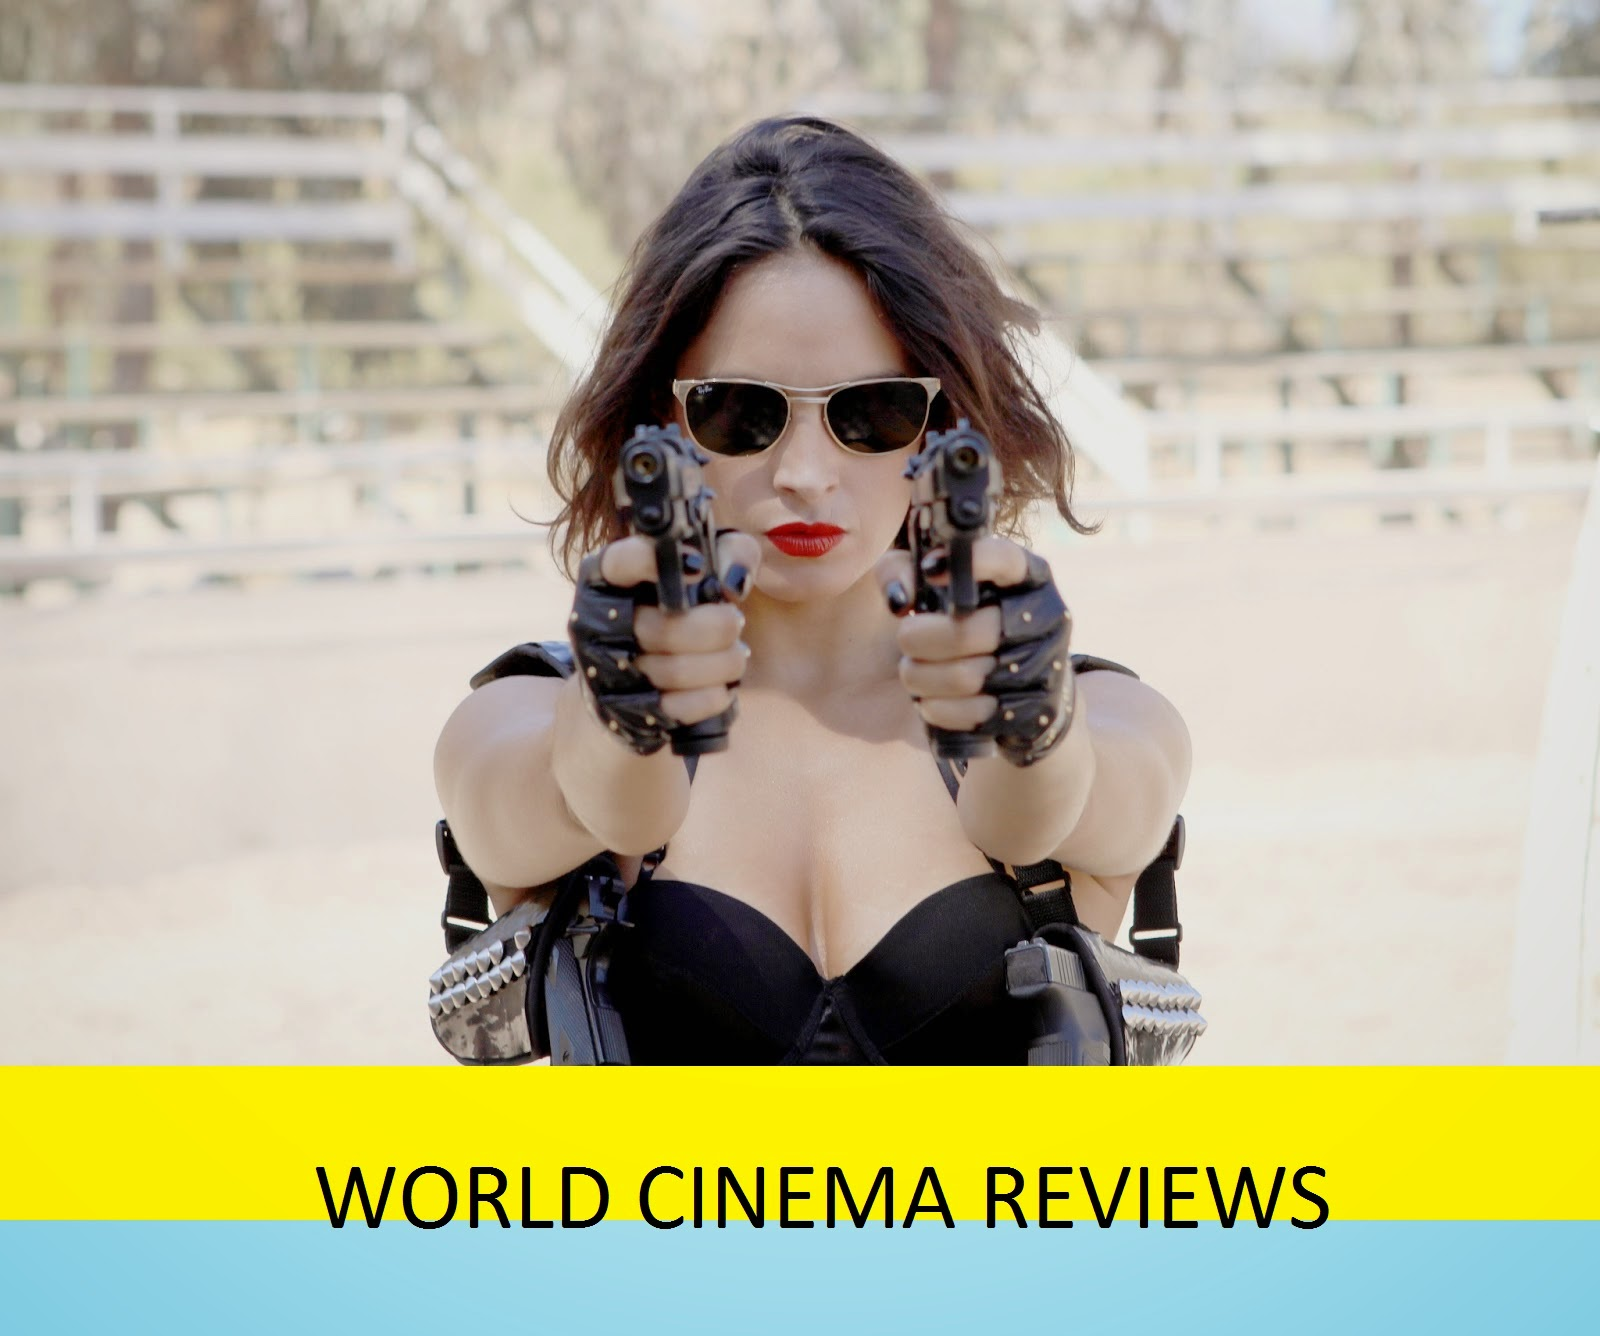 (Rest of the) World Cinema Reviews